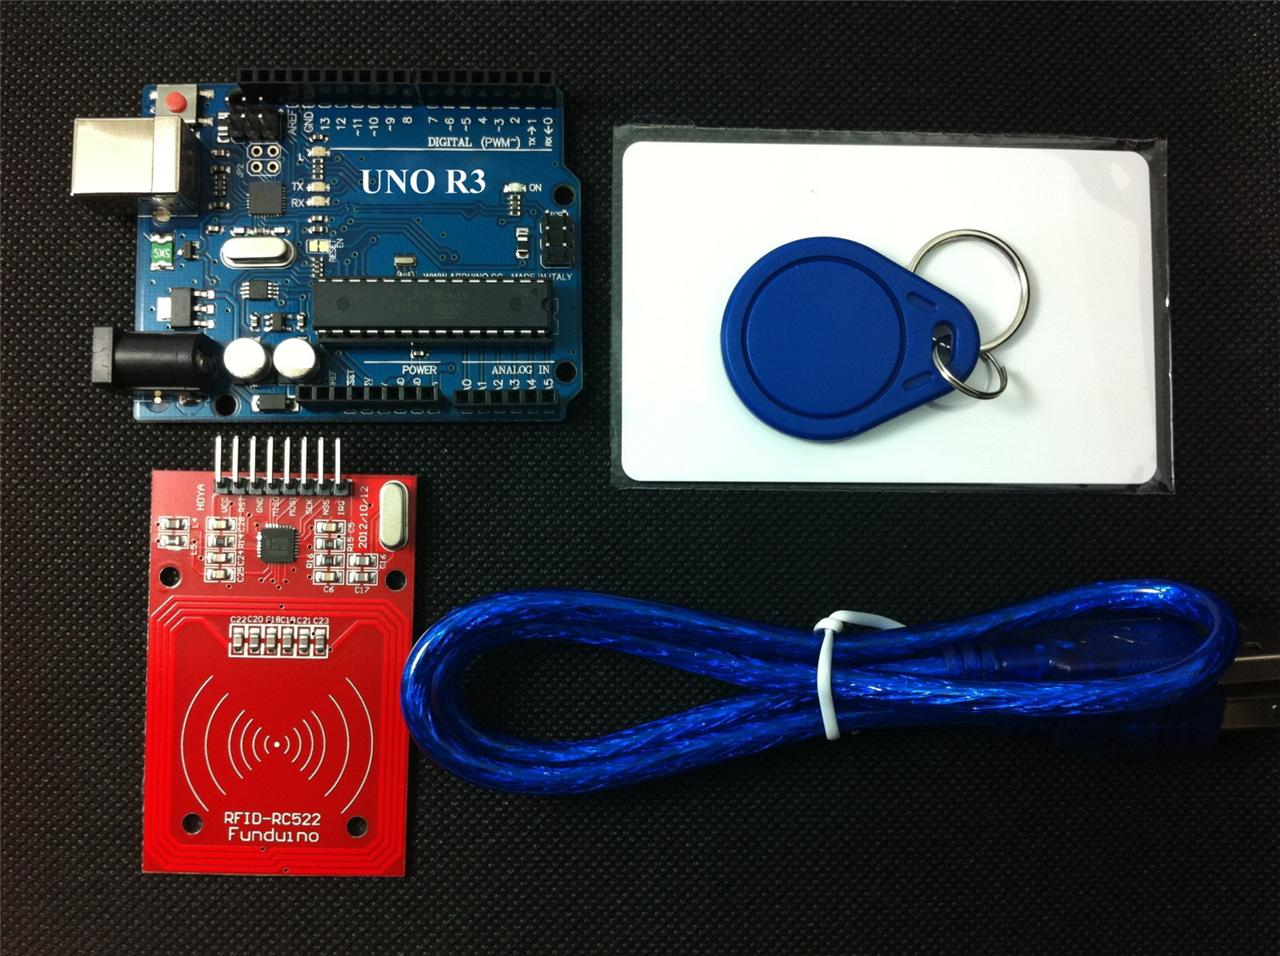 Details about [Sintron] UNO R3 Board with RC522 RFID Reader Kit + PDF for  Arduino AVR Learner